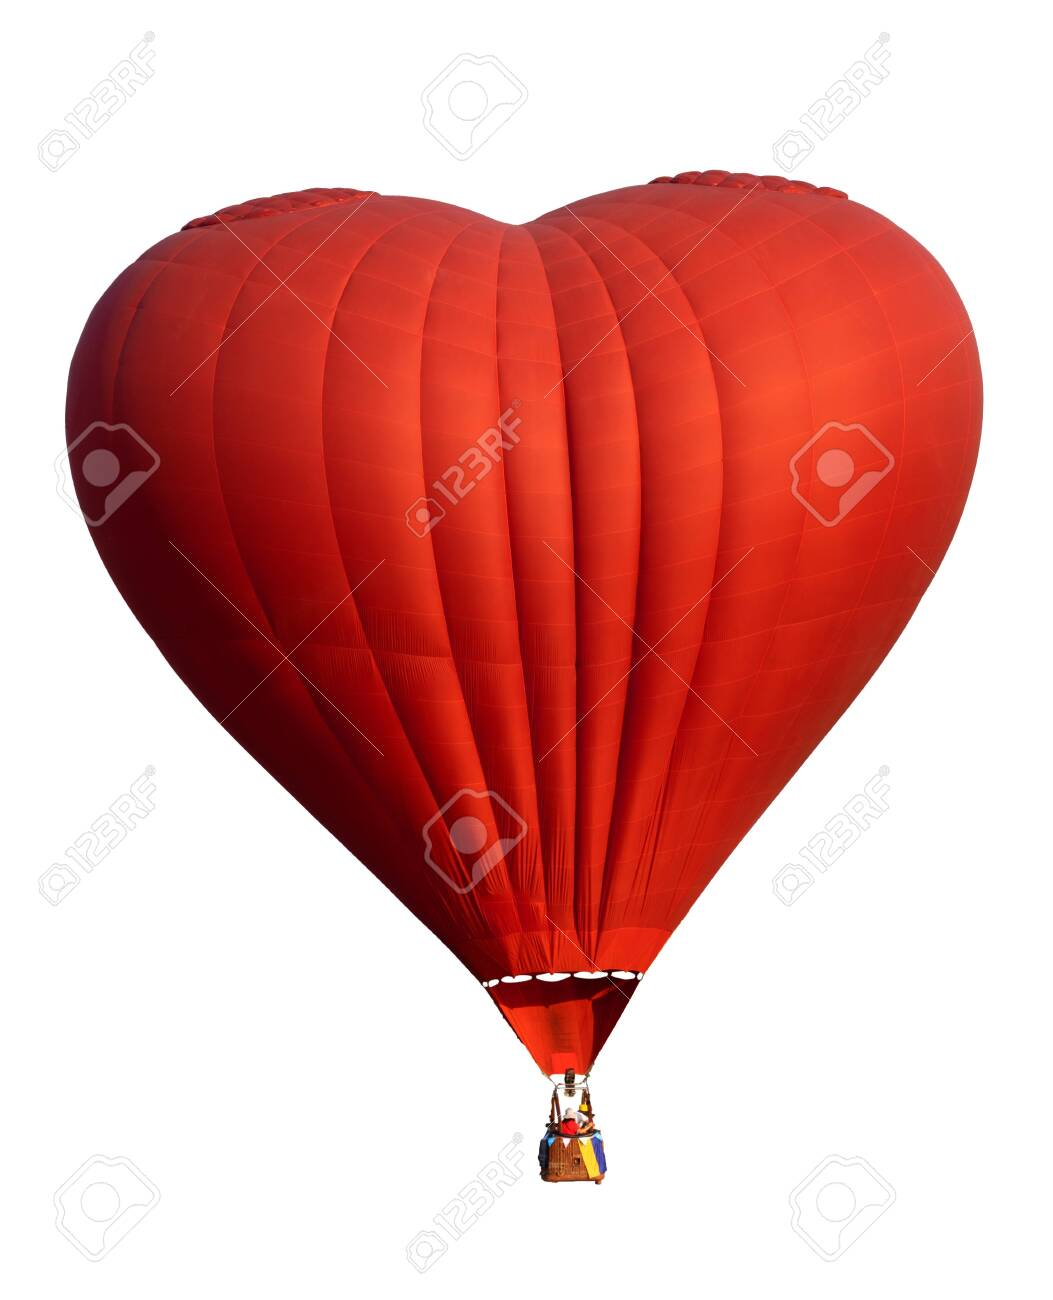 Red hot air balloon in heart shape isolate on white. Symbol of love and valentines. Complete with clipping path for object. - 139261528